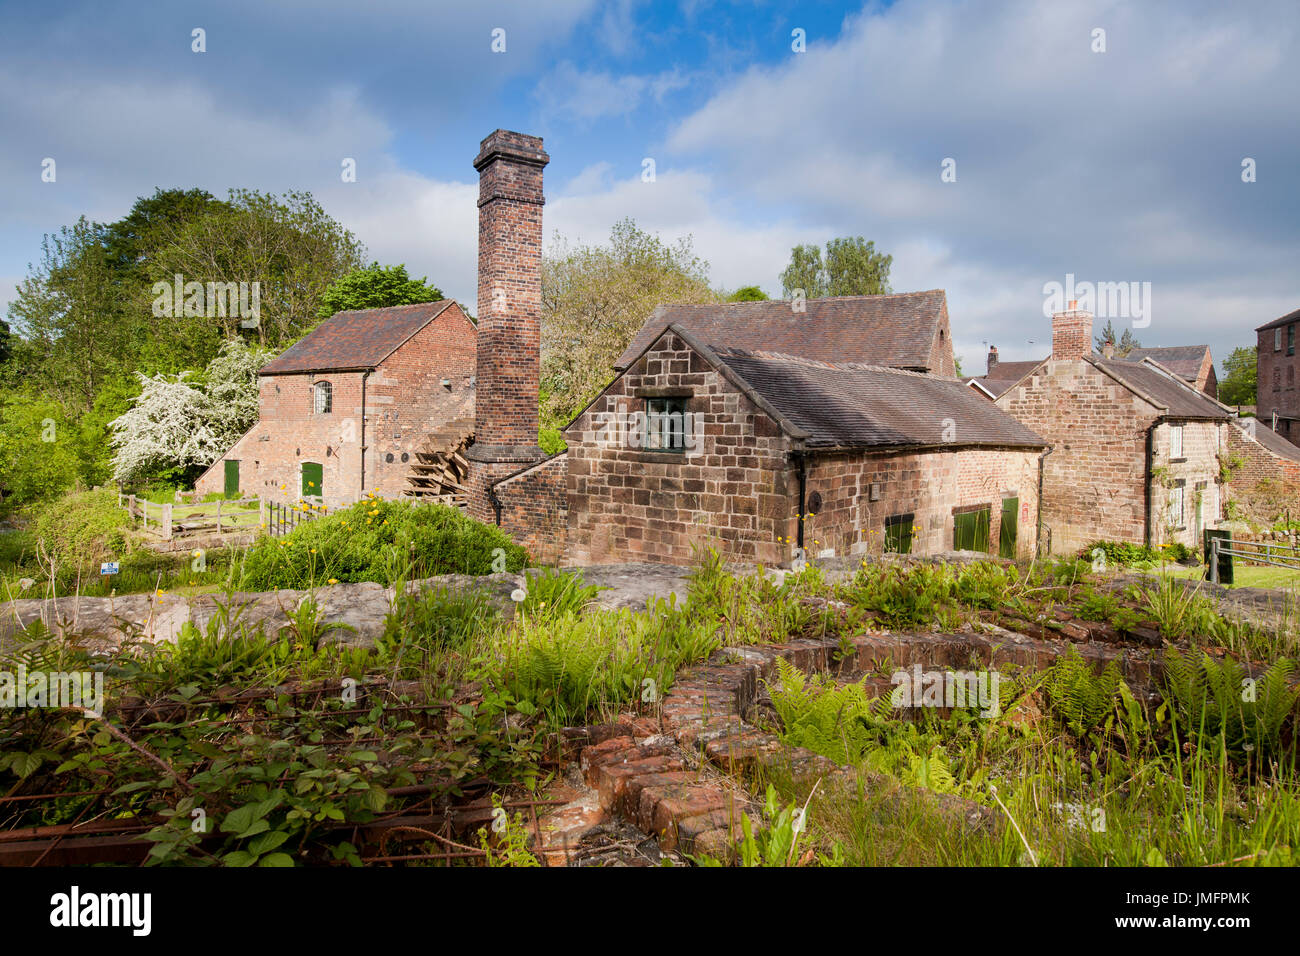 Cheddleton Flint Mill, Staffordshire - Stock Image